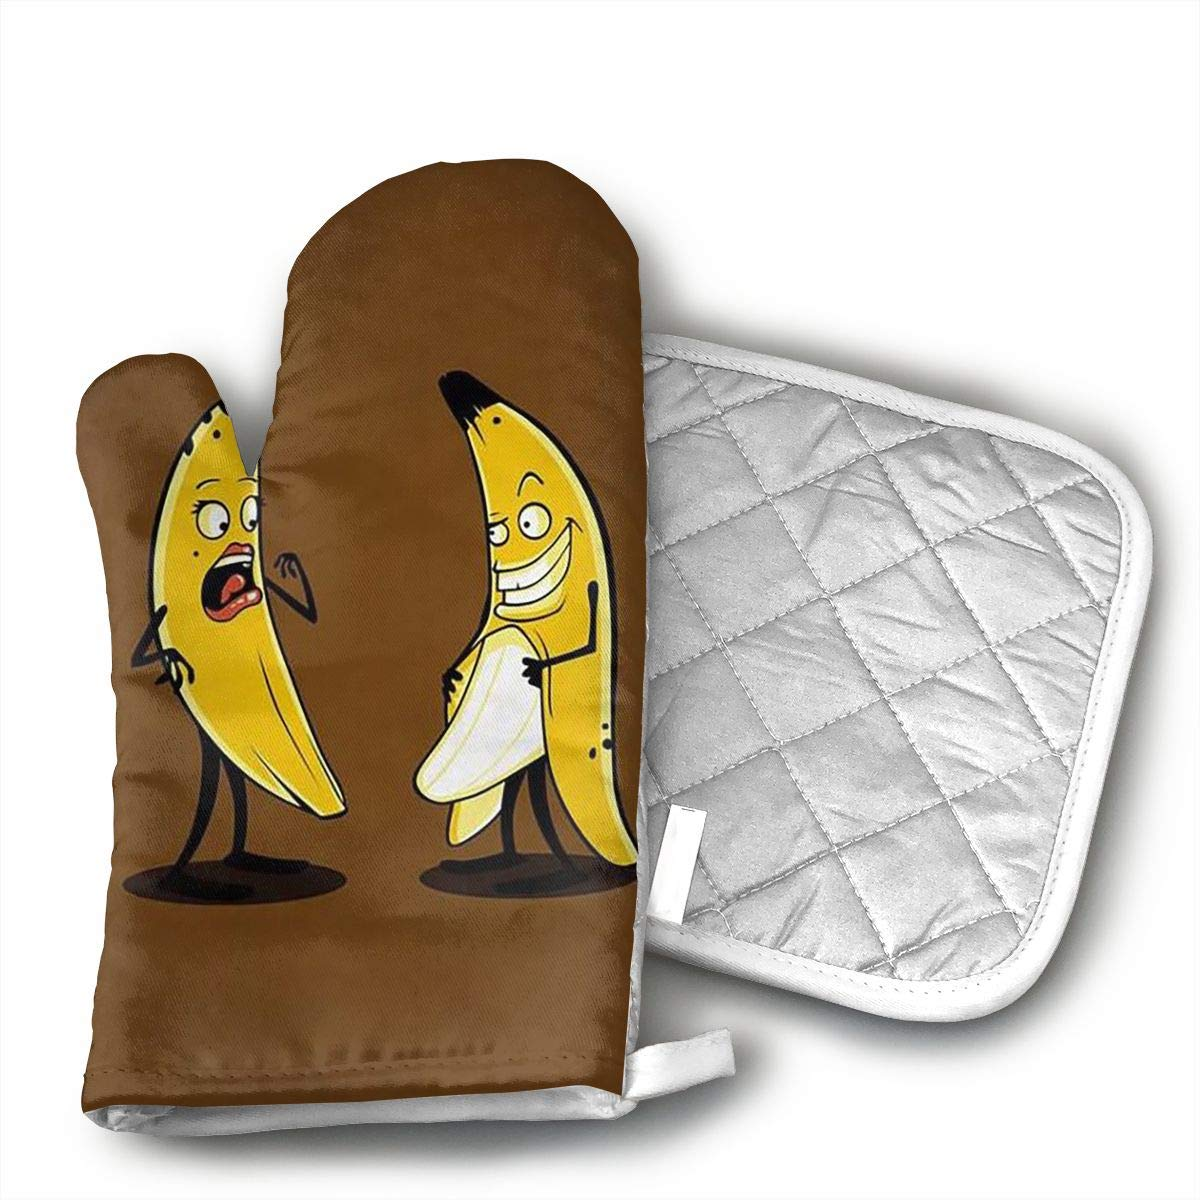 TRENDCAT Funny Banana Oven Mitts and Potholders (2-Piece Sets) - Extra Long Professional Heat Resistant Pot Holder & Baking Gloves - Food Safe